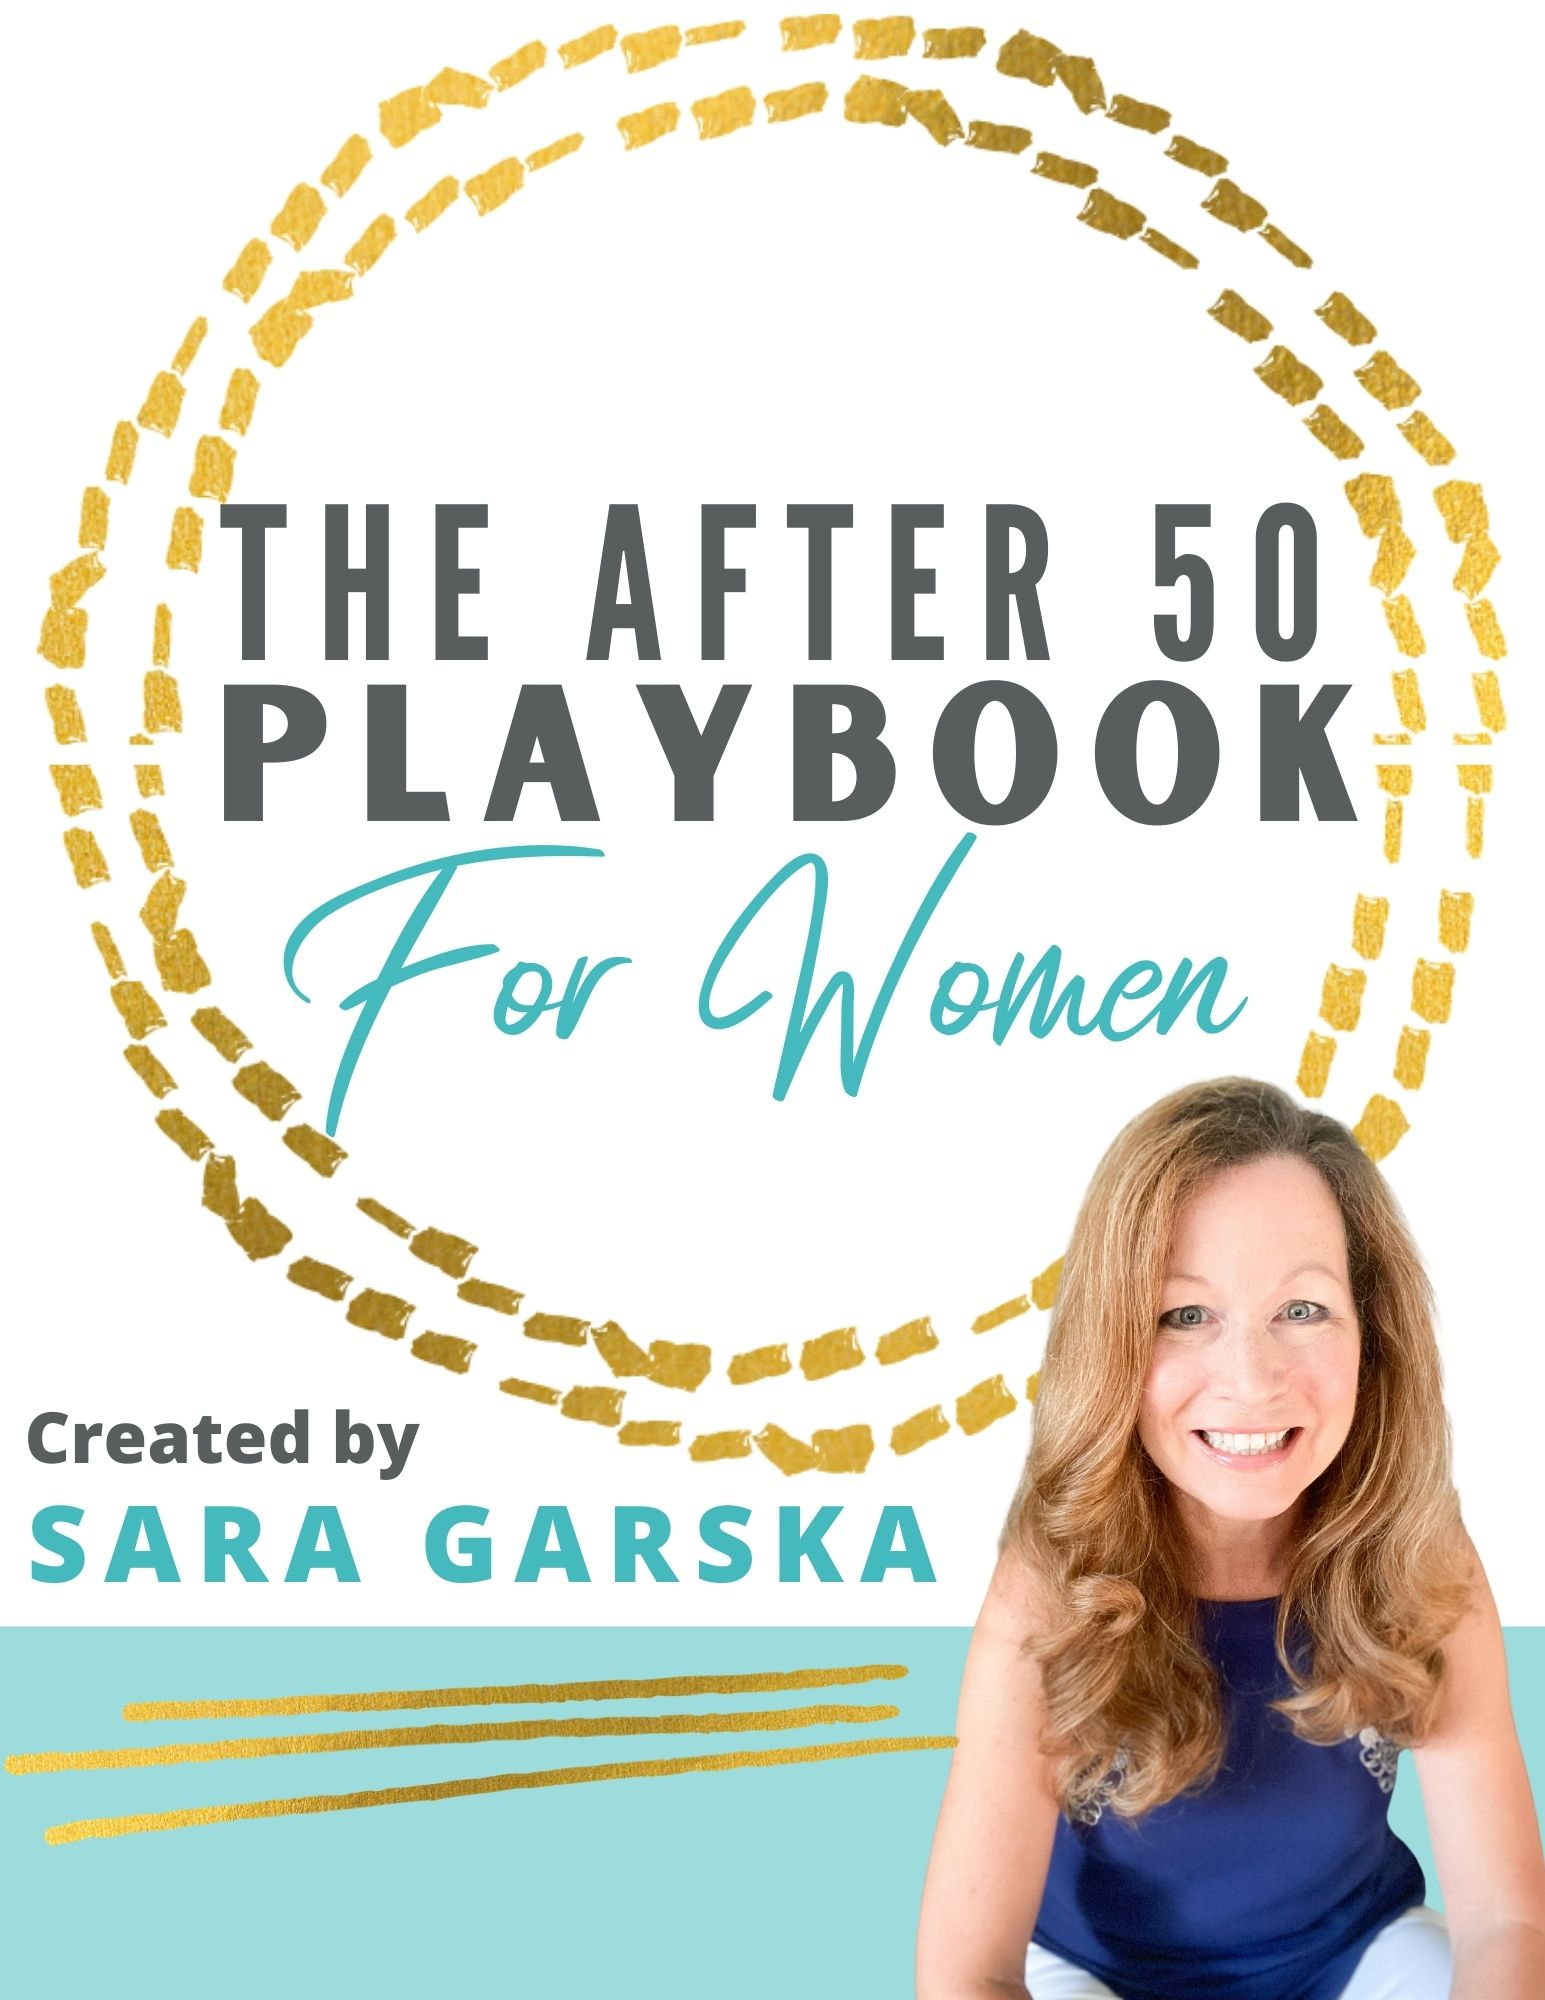 The After 50 Playbook for Women